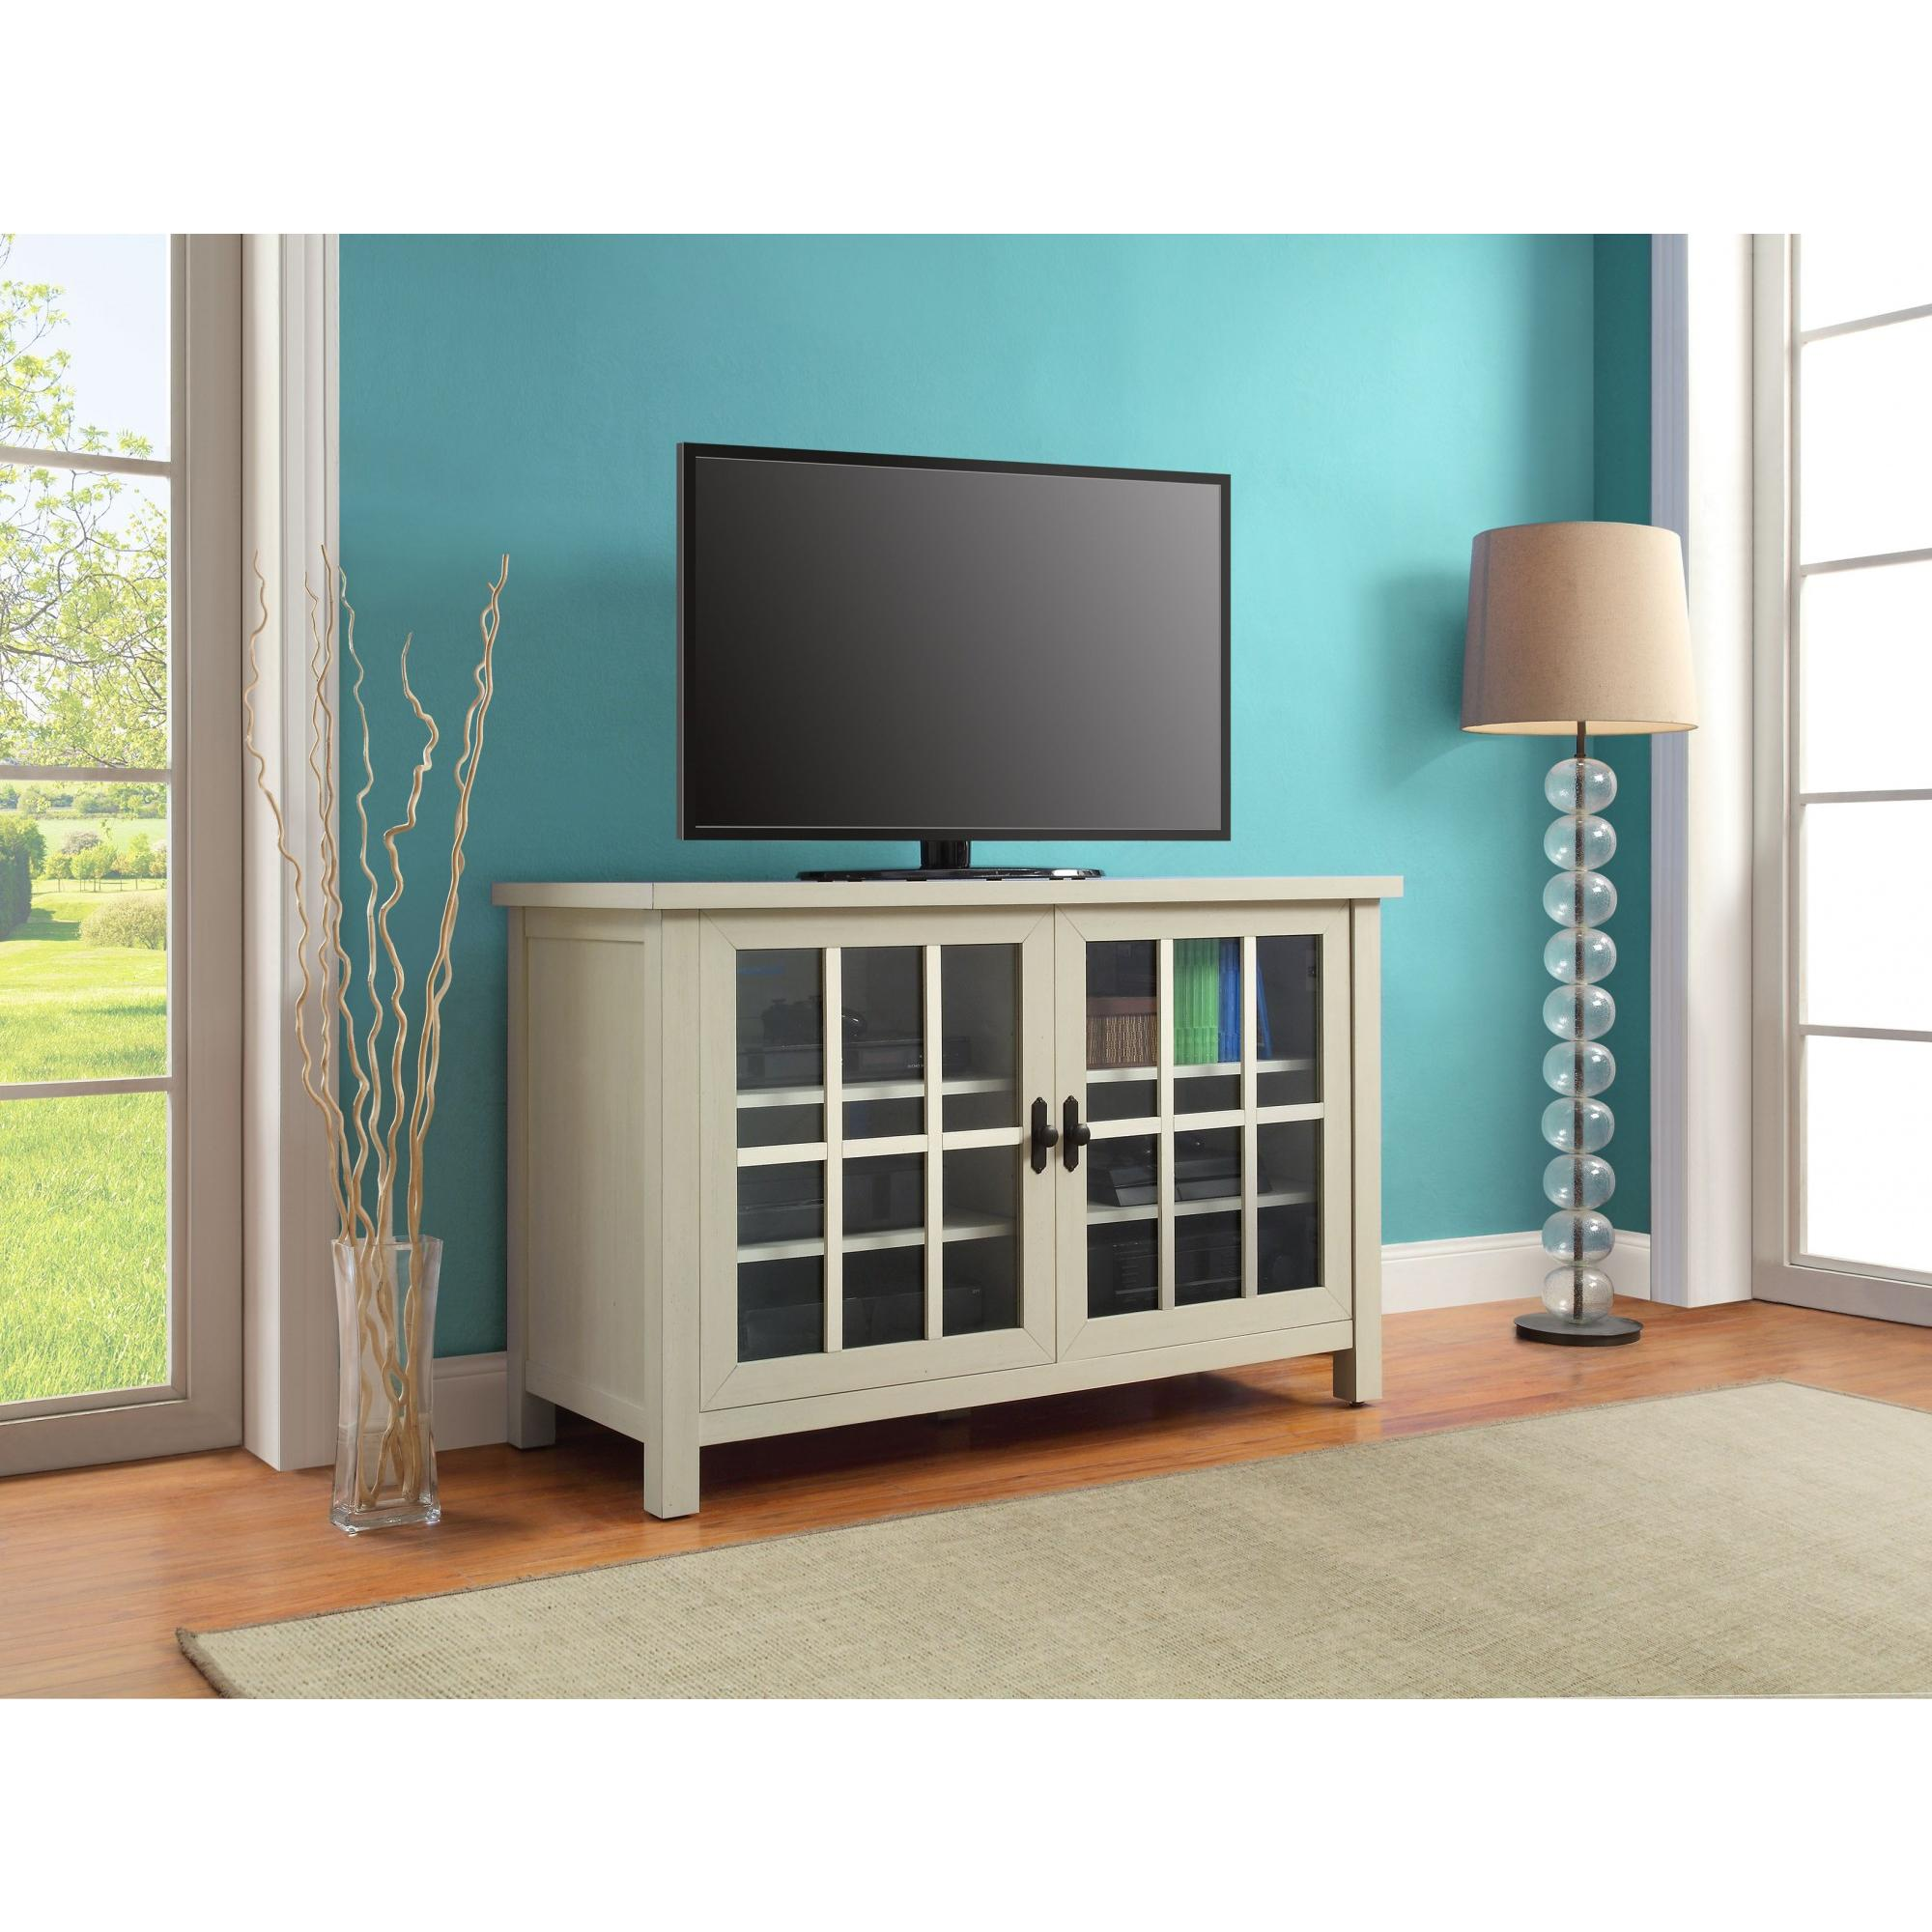 "Free Shipping. Buy Better Homes and Gardens Oxford Square TV Console for TVs up to 55"" at Walmart.com"